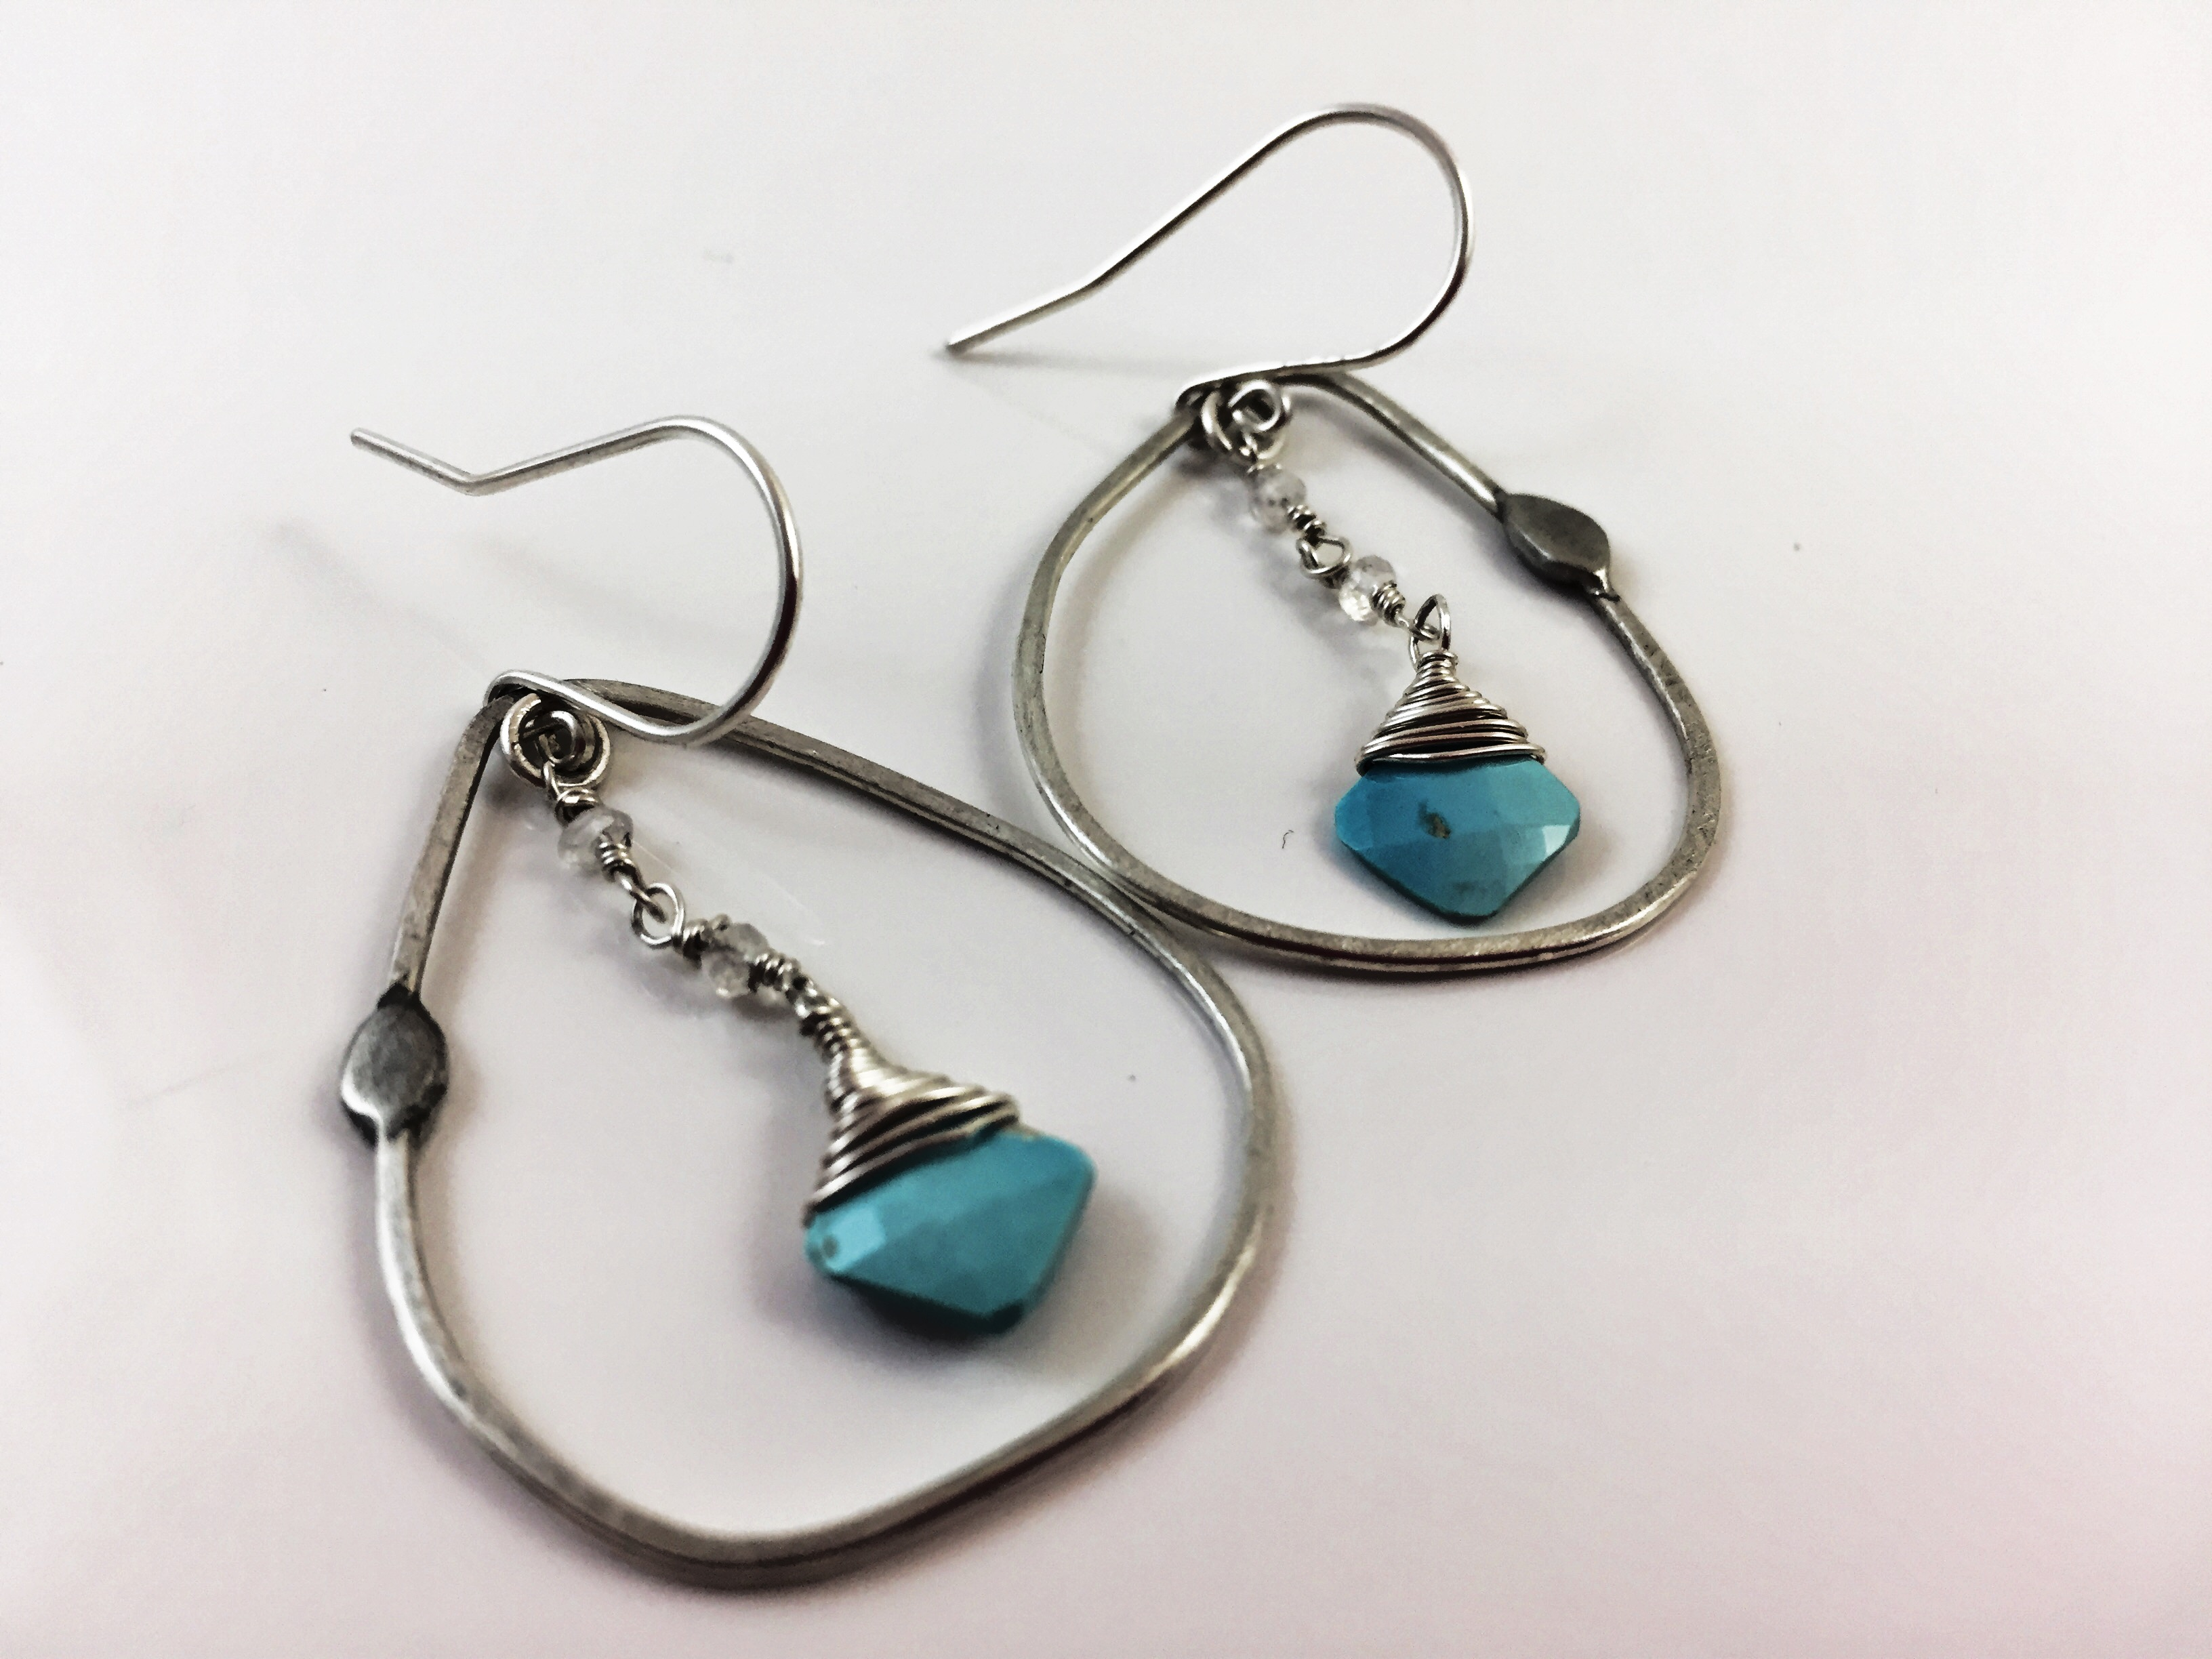 Sterling silver handmade earrings with Faceted Turquoise and Swarovski stones - Wabi series